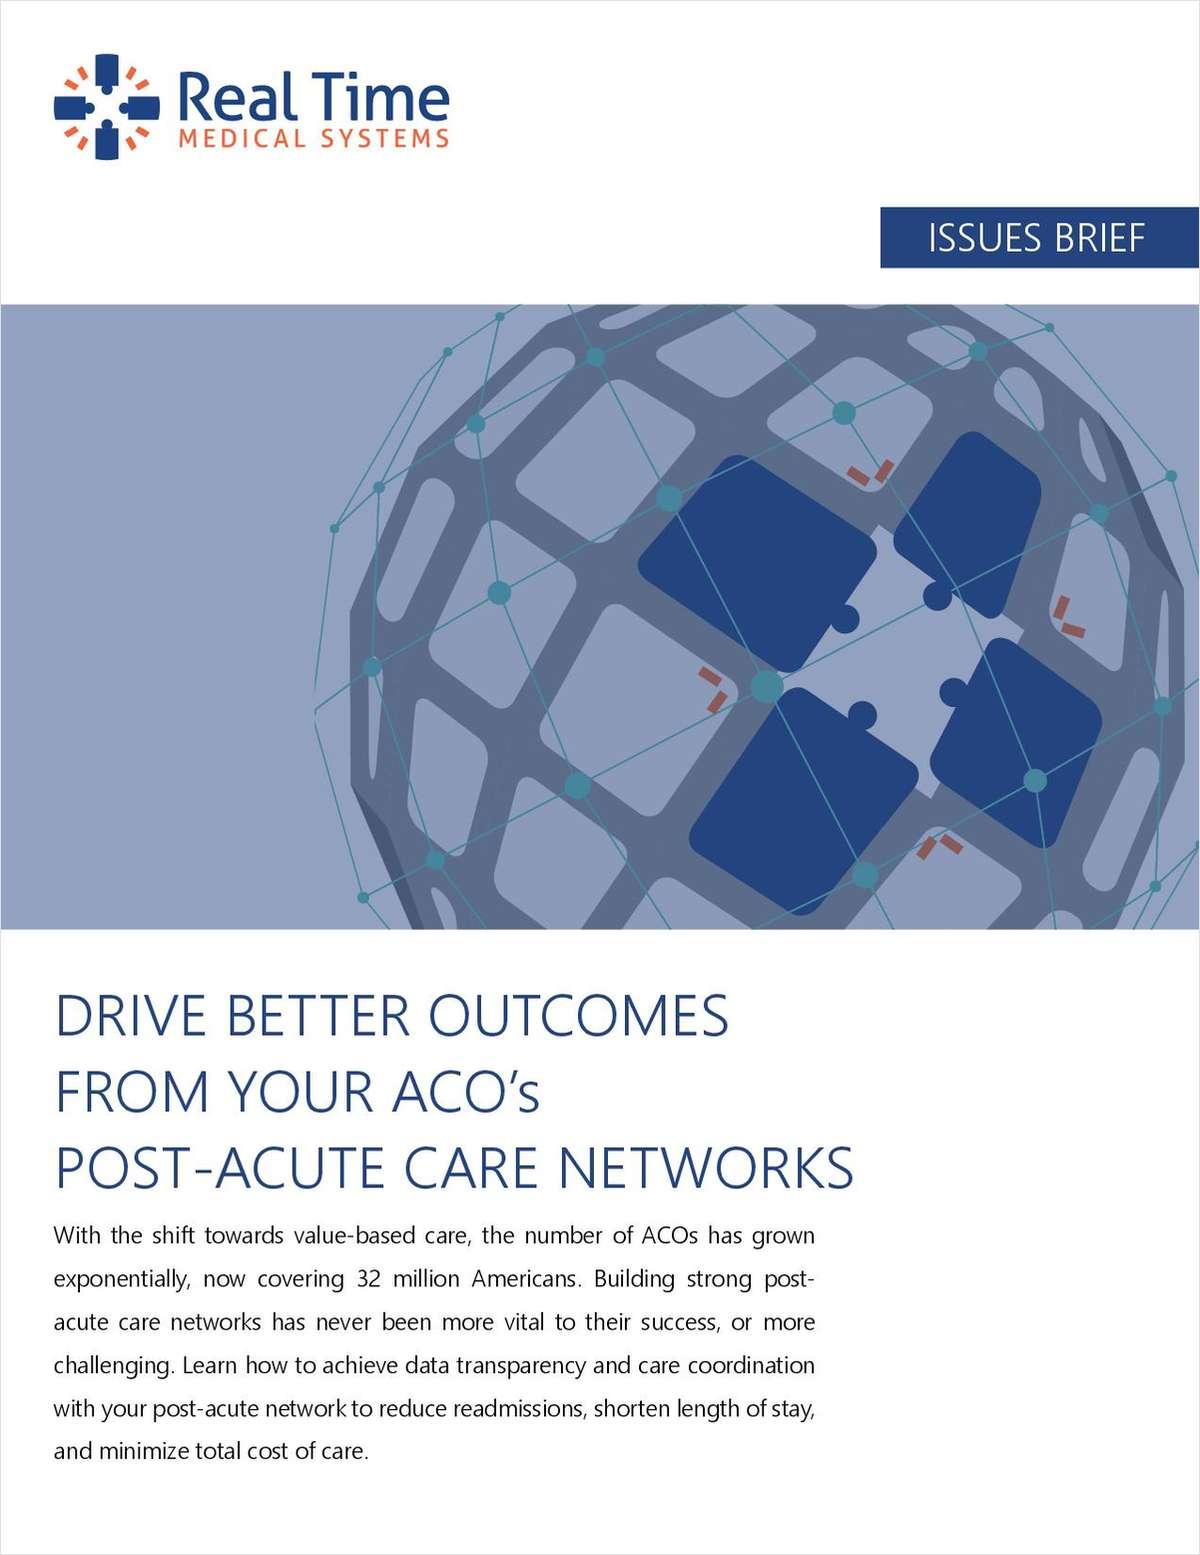 Drive Better Outcomes From Your ACO's Post-Acute Care Networks